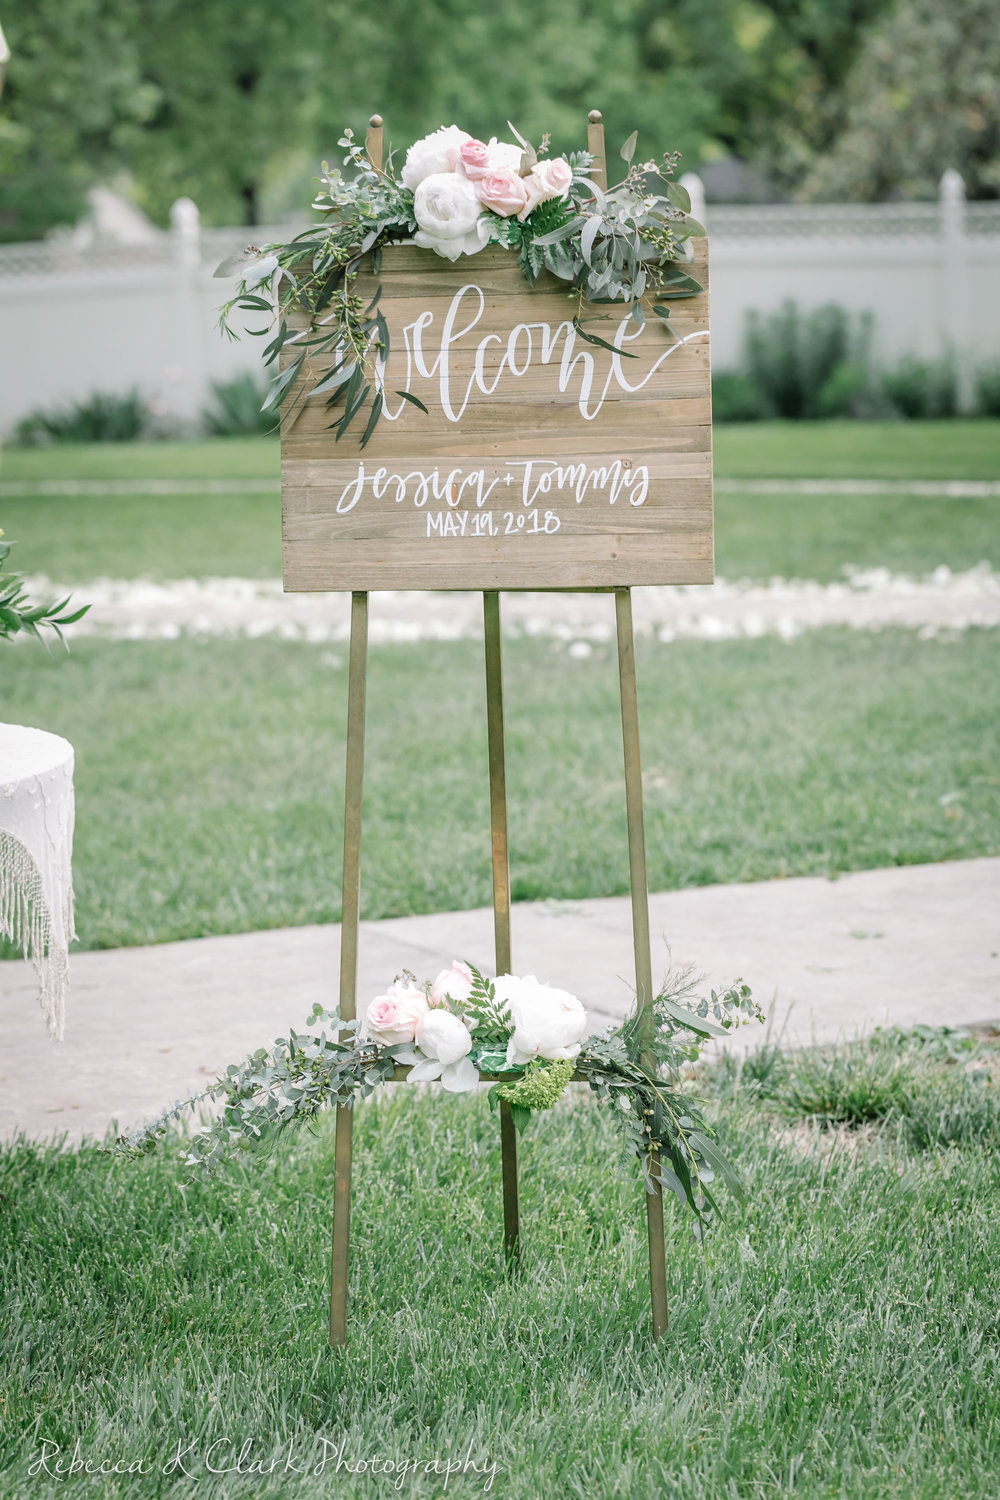 jessica_and_tommy_wedding_images_for_florist_rebeccakclark_photography-18.jpg